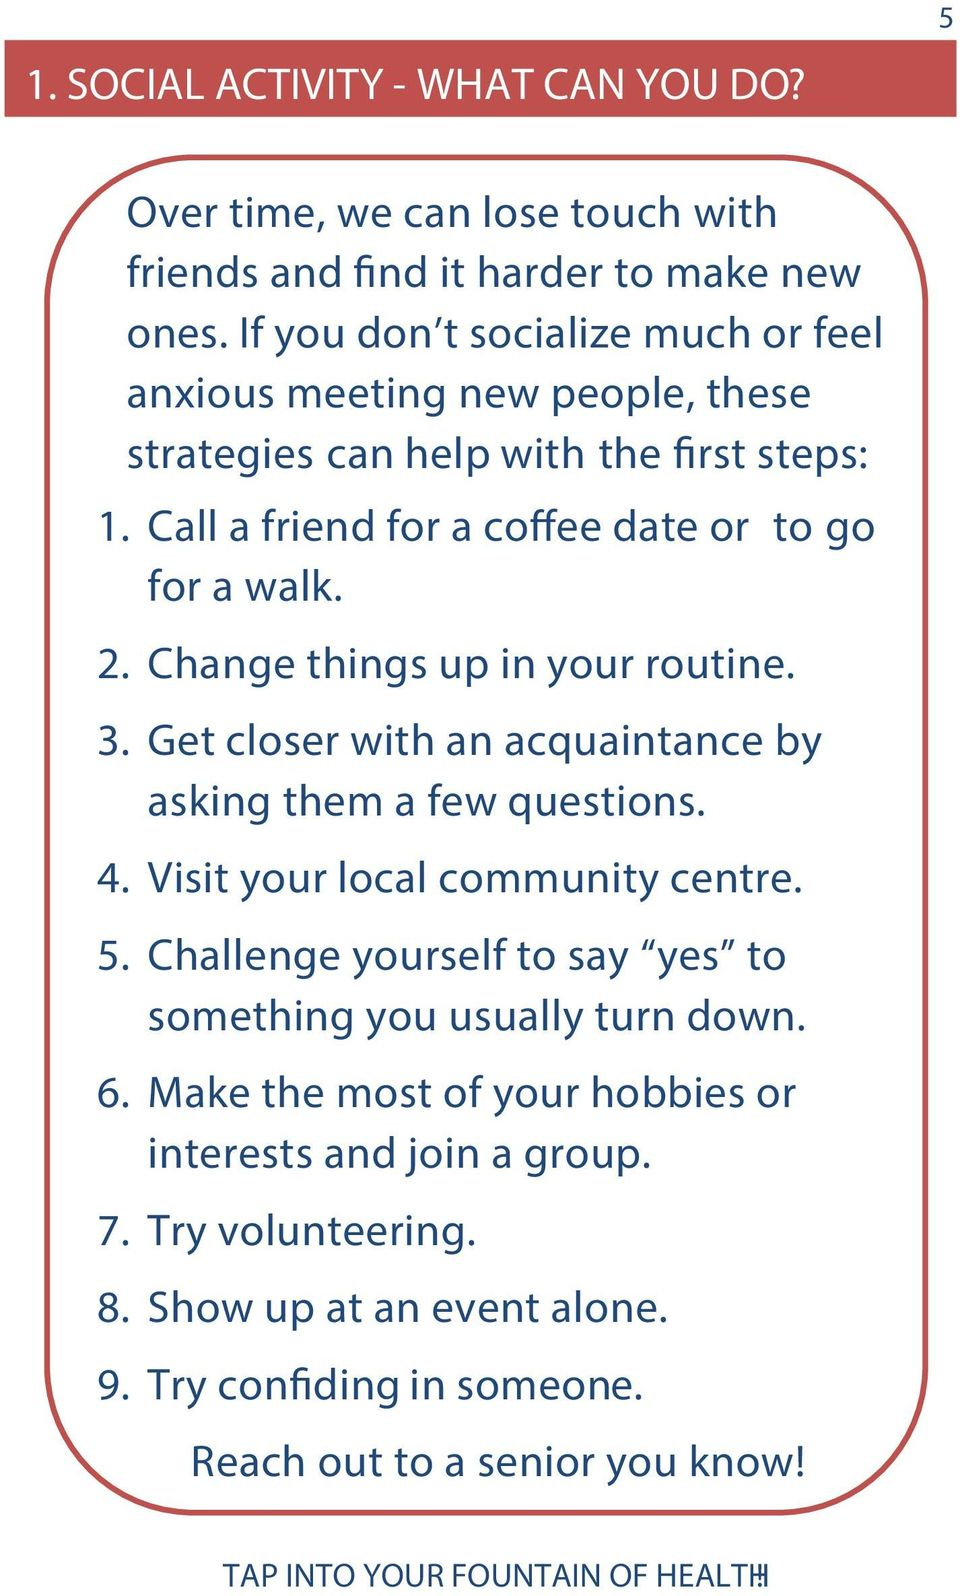 2. Change things up in your routine. 3. Get closer with an acquaintance by asking them a few questions. 4. Visit your local community centre. 5.